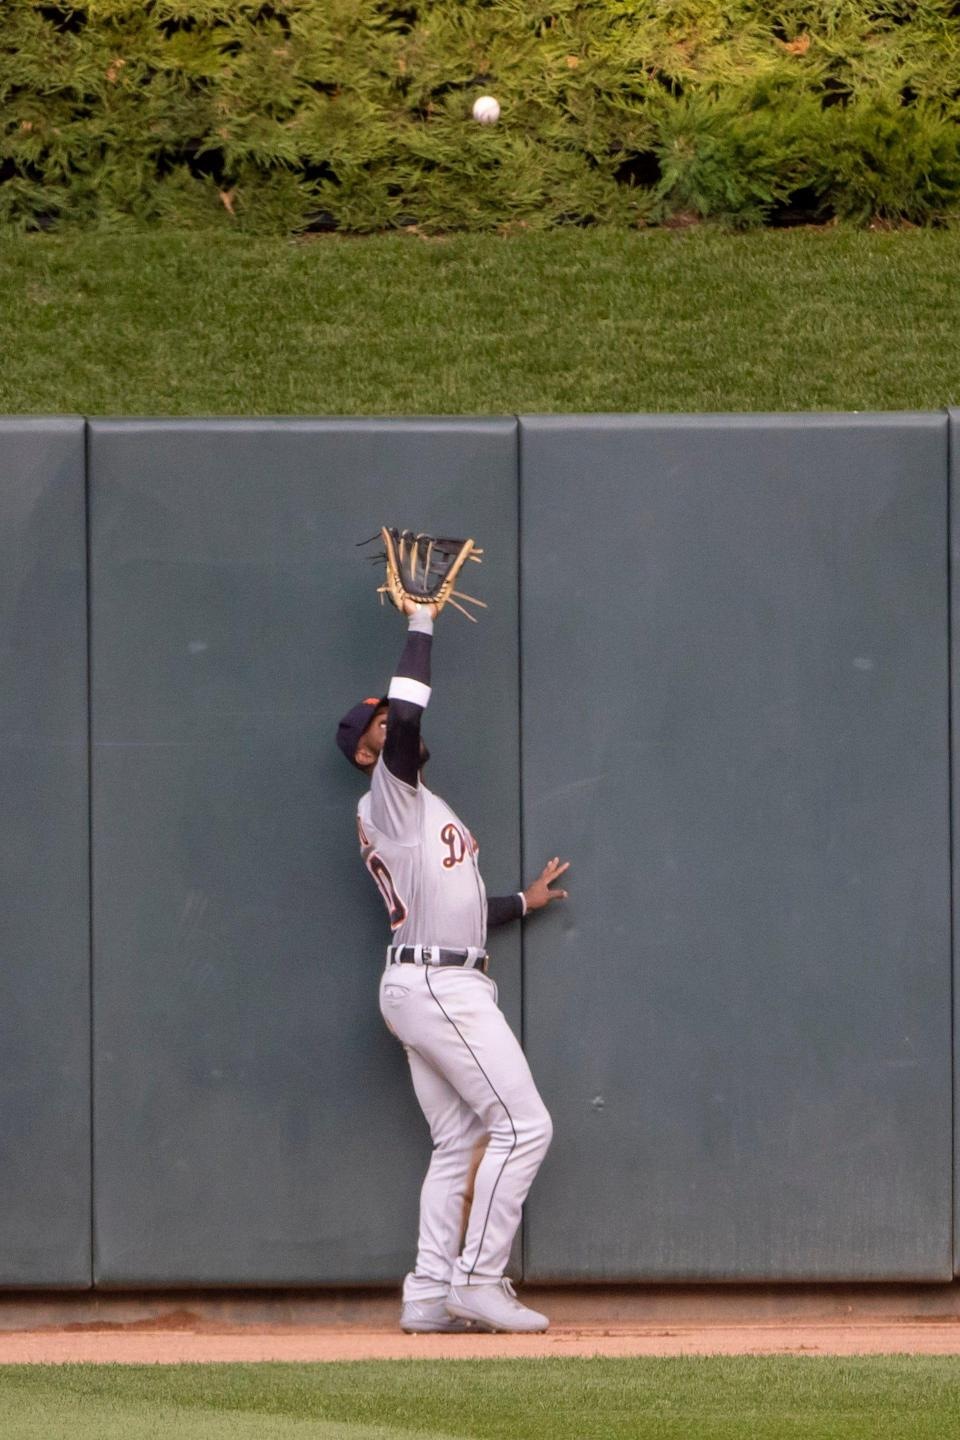 Detroit Tigers center fielder Akil Baddoo (60) catches a fly ball in the first inning at Target Field in Minneapolis on Friday, July 9, 2021.